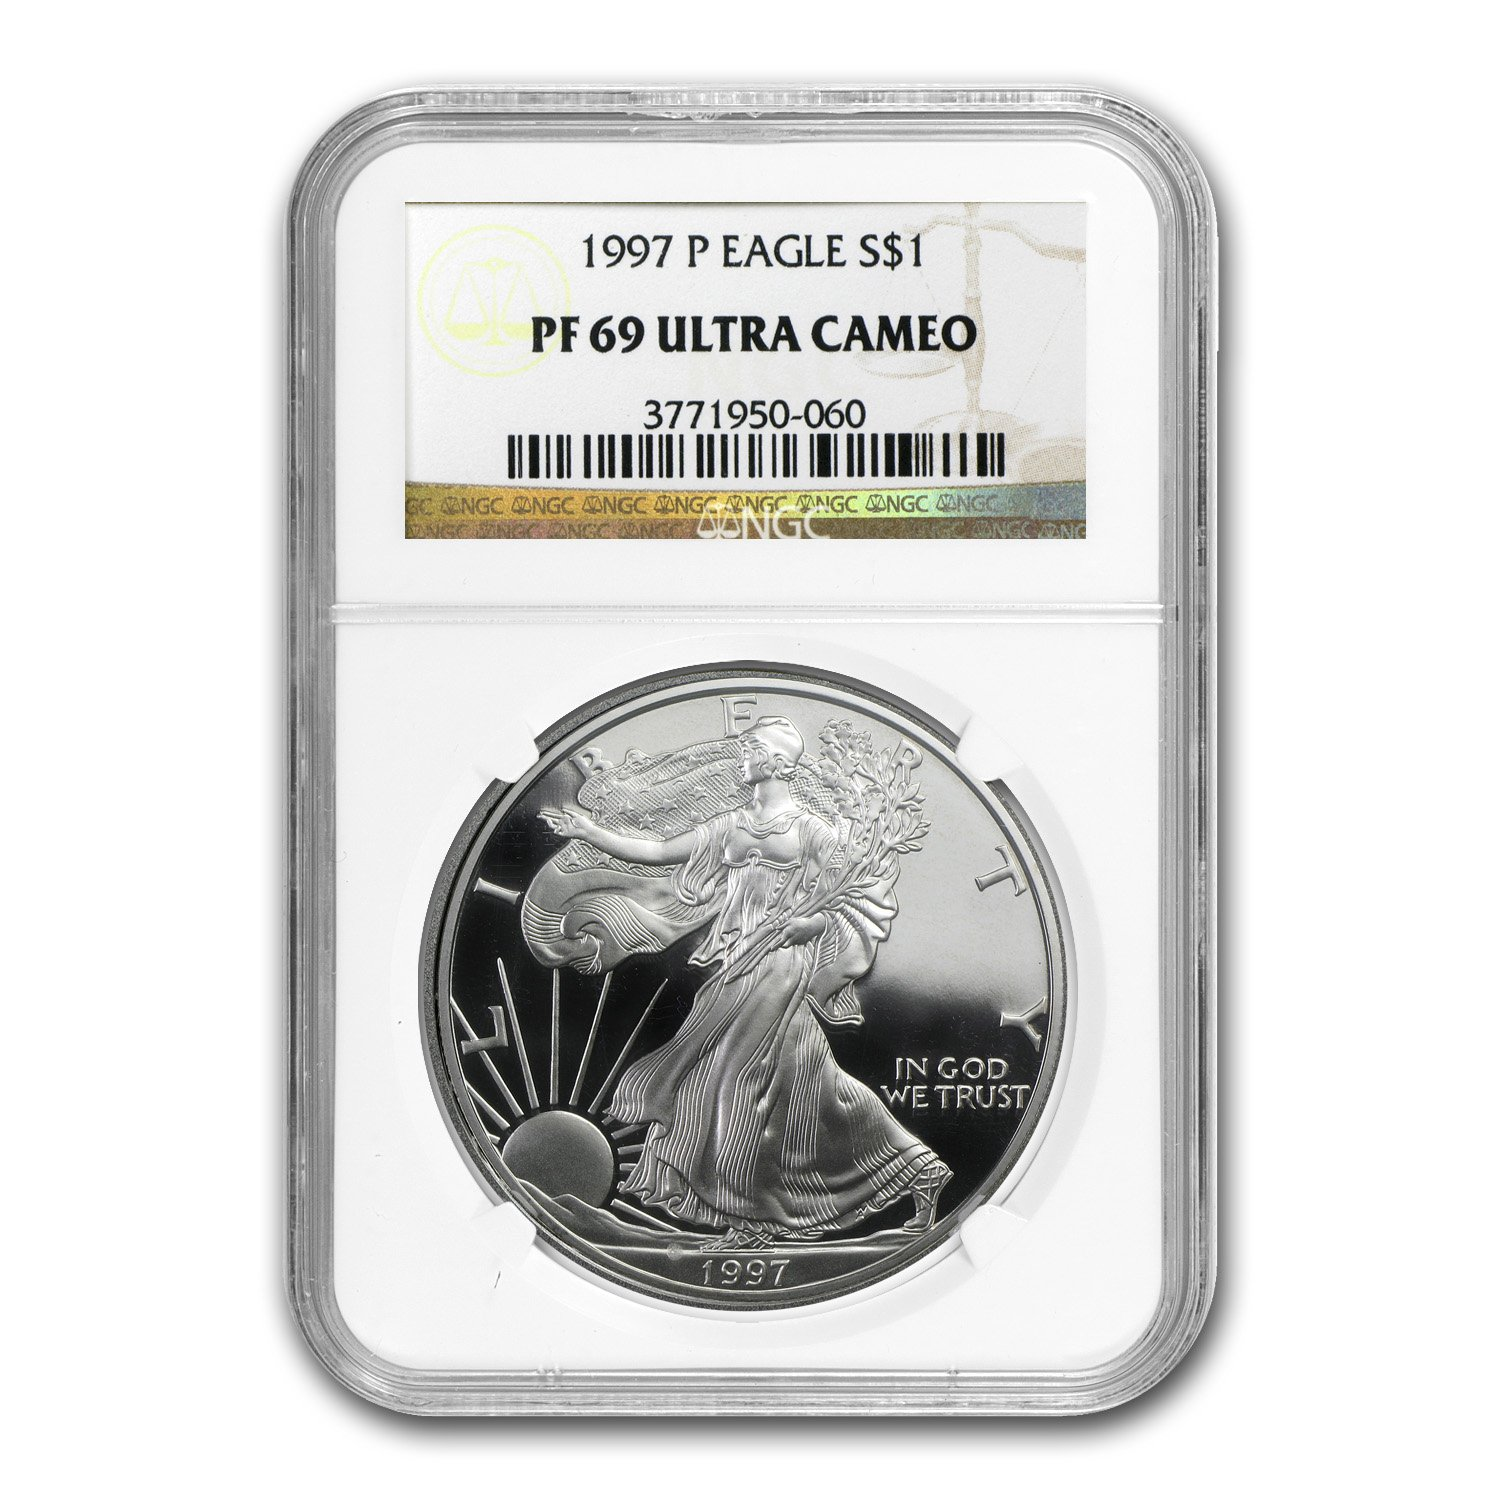 1 oz 1997-P U.S NGC PF 69 ULTRA CAMEO Silver Eagle Proof Ultra Cameo Coin